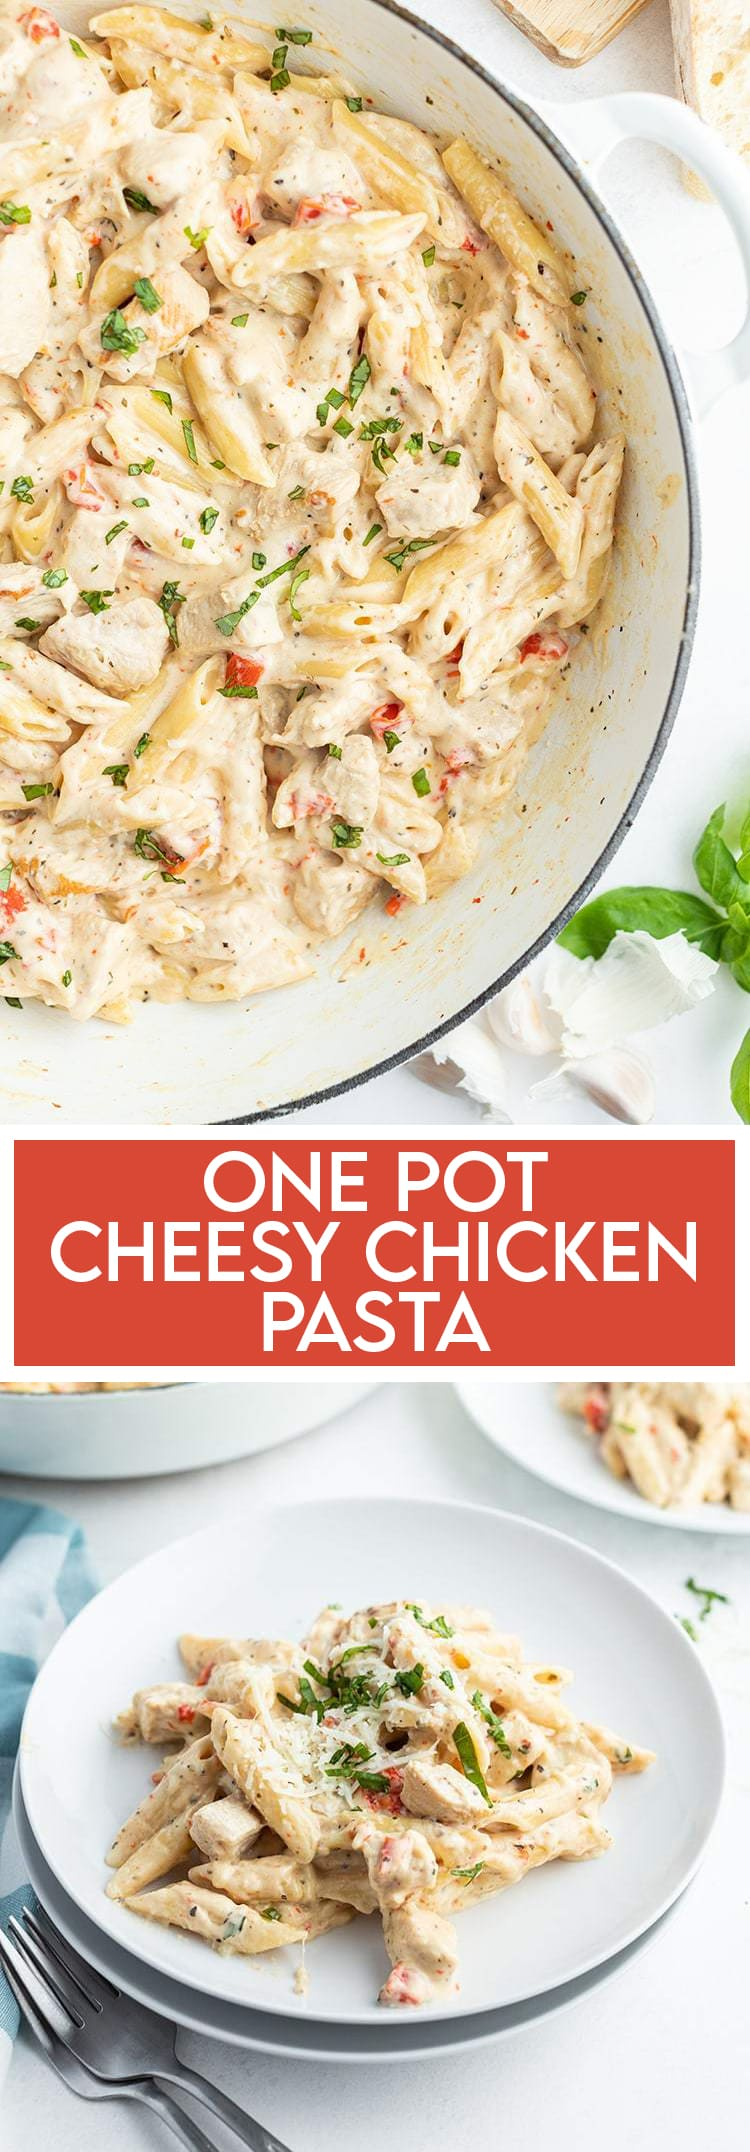 One Pot Cheesy Chicken Pasta collage with text overlay for pinterest